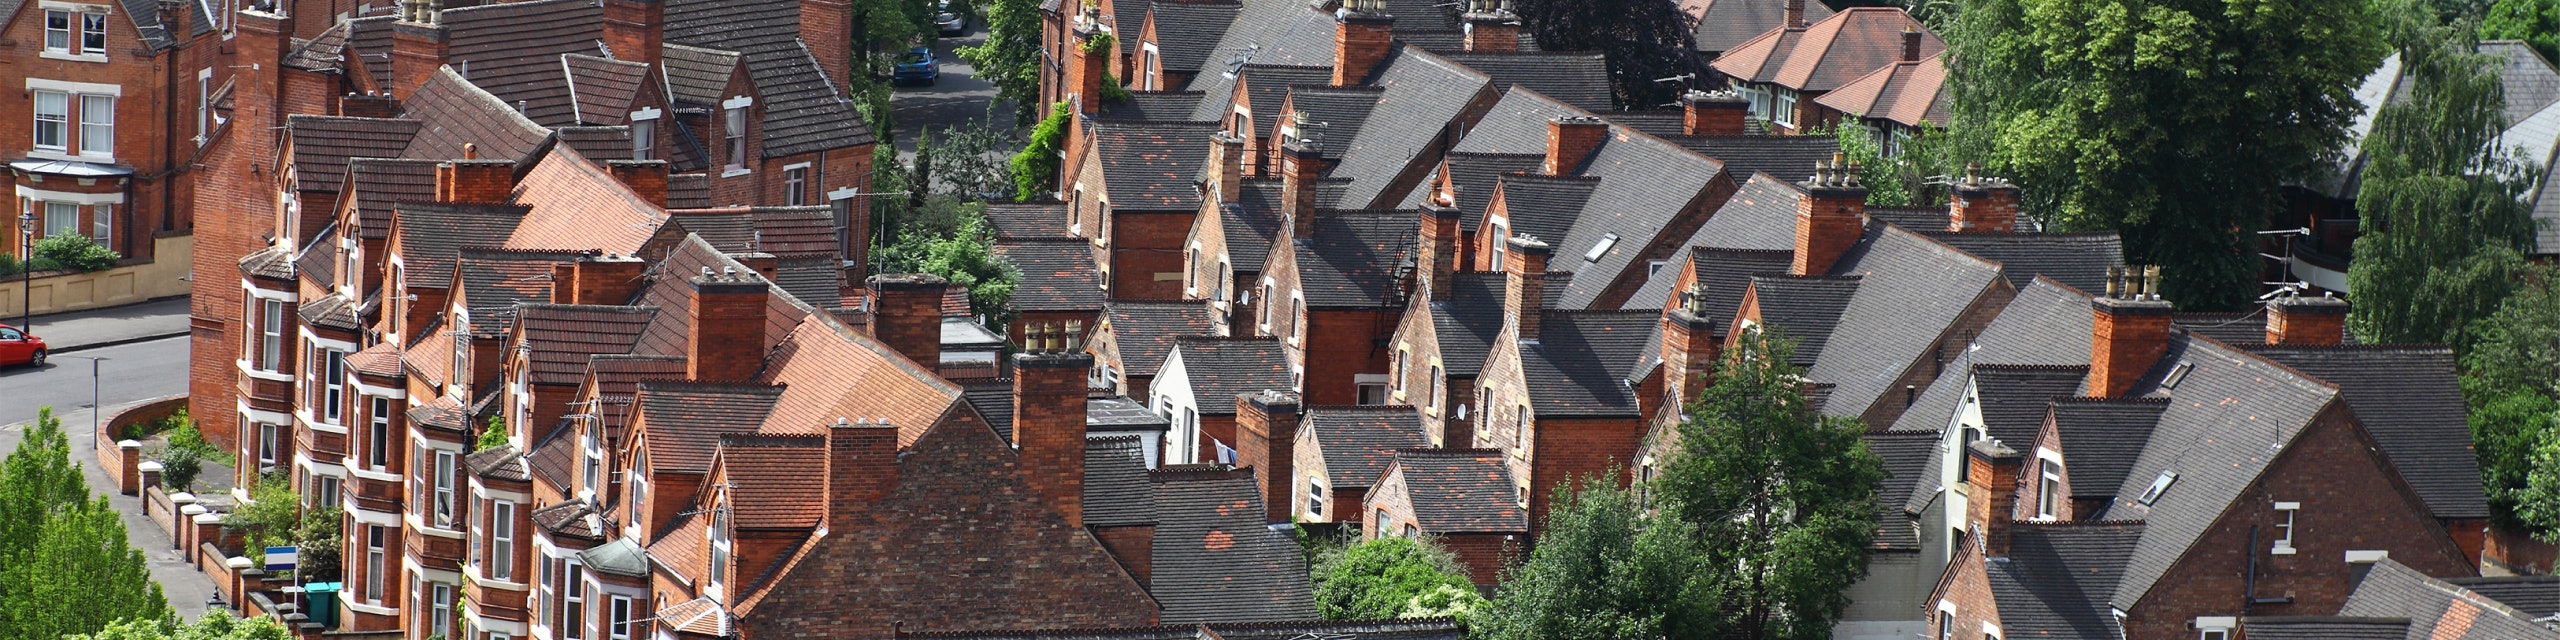 A row of houses in Nottingham